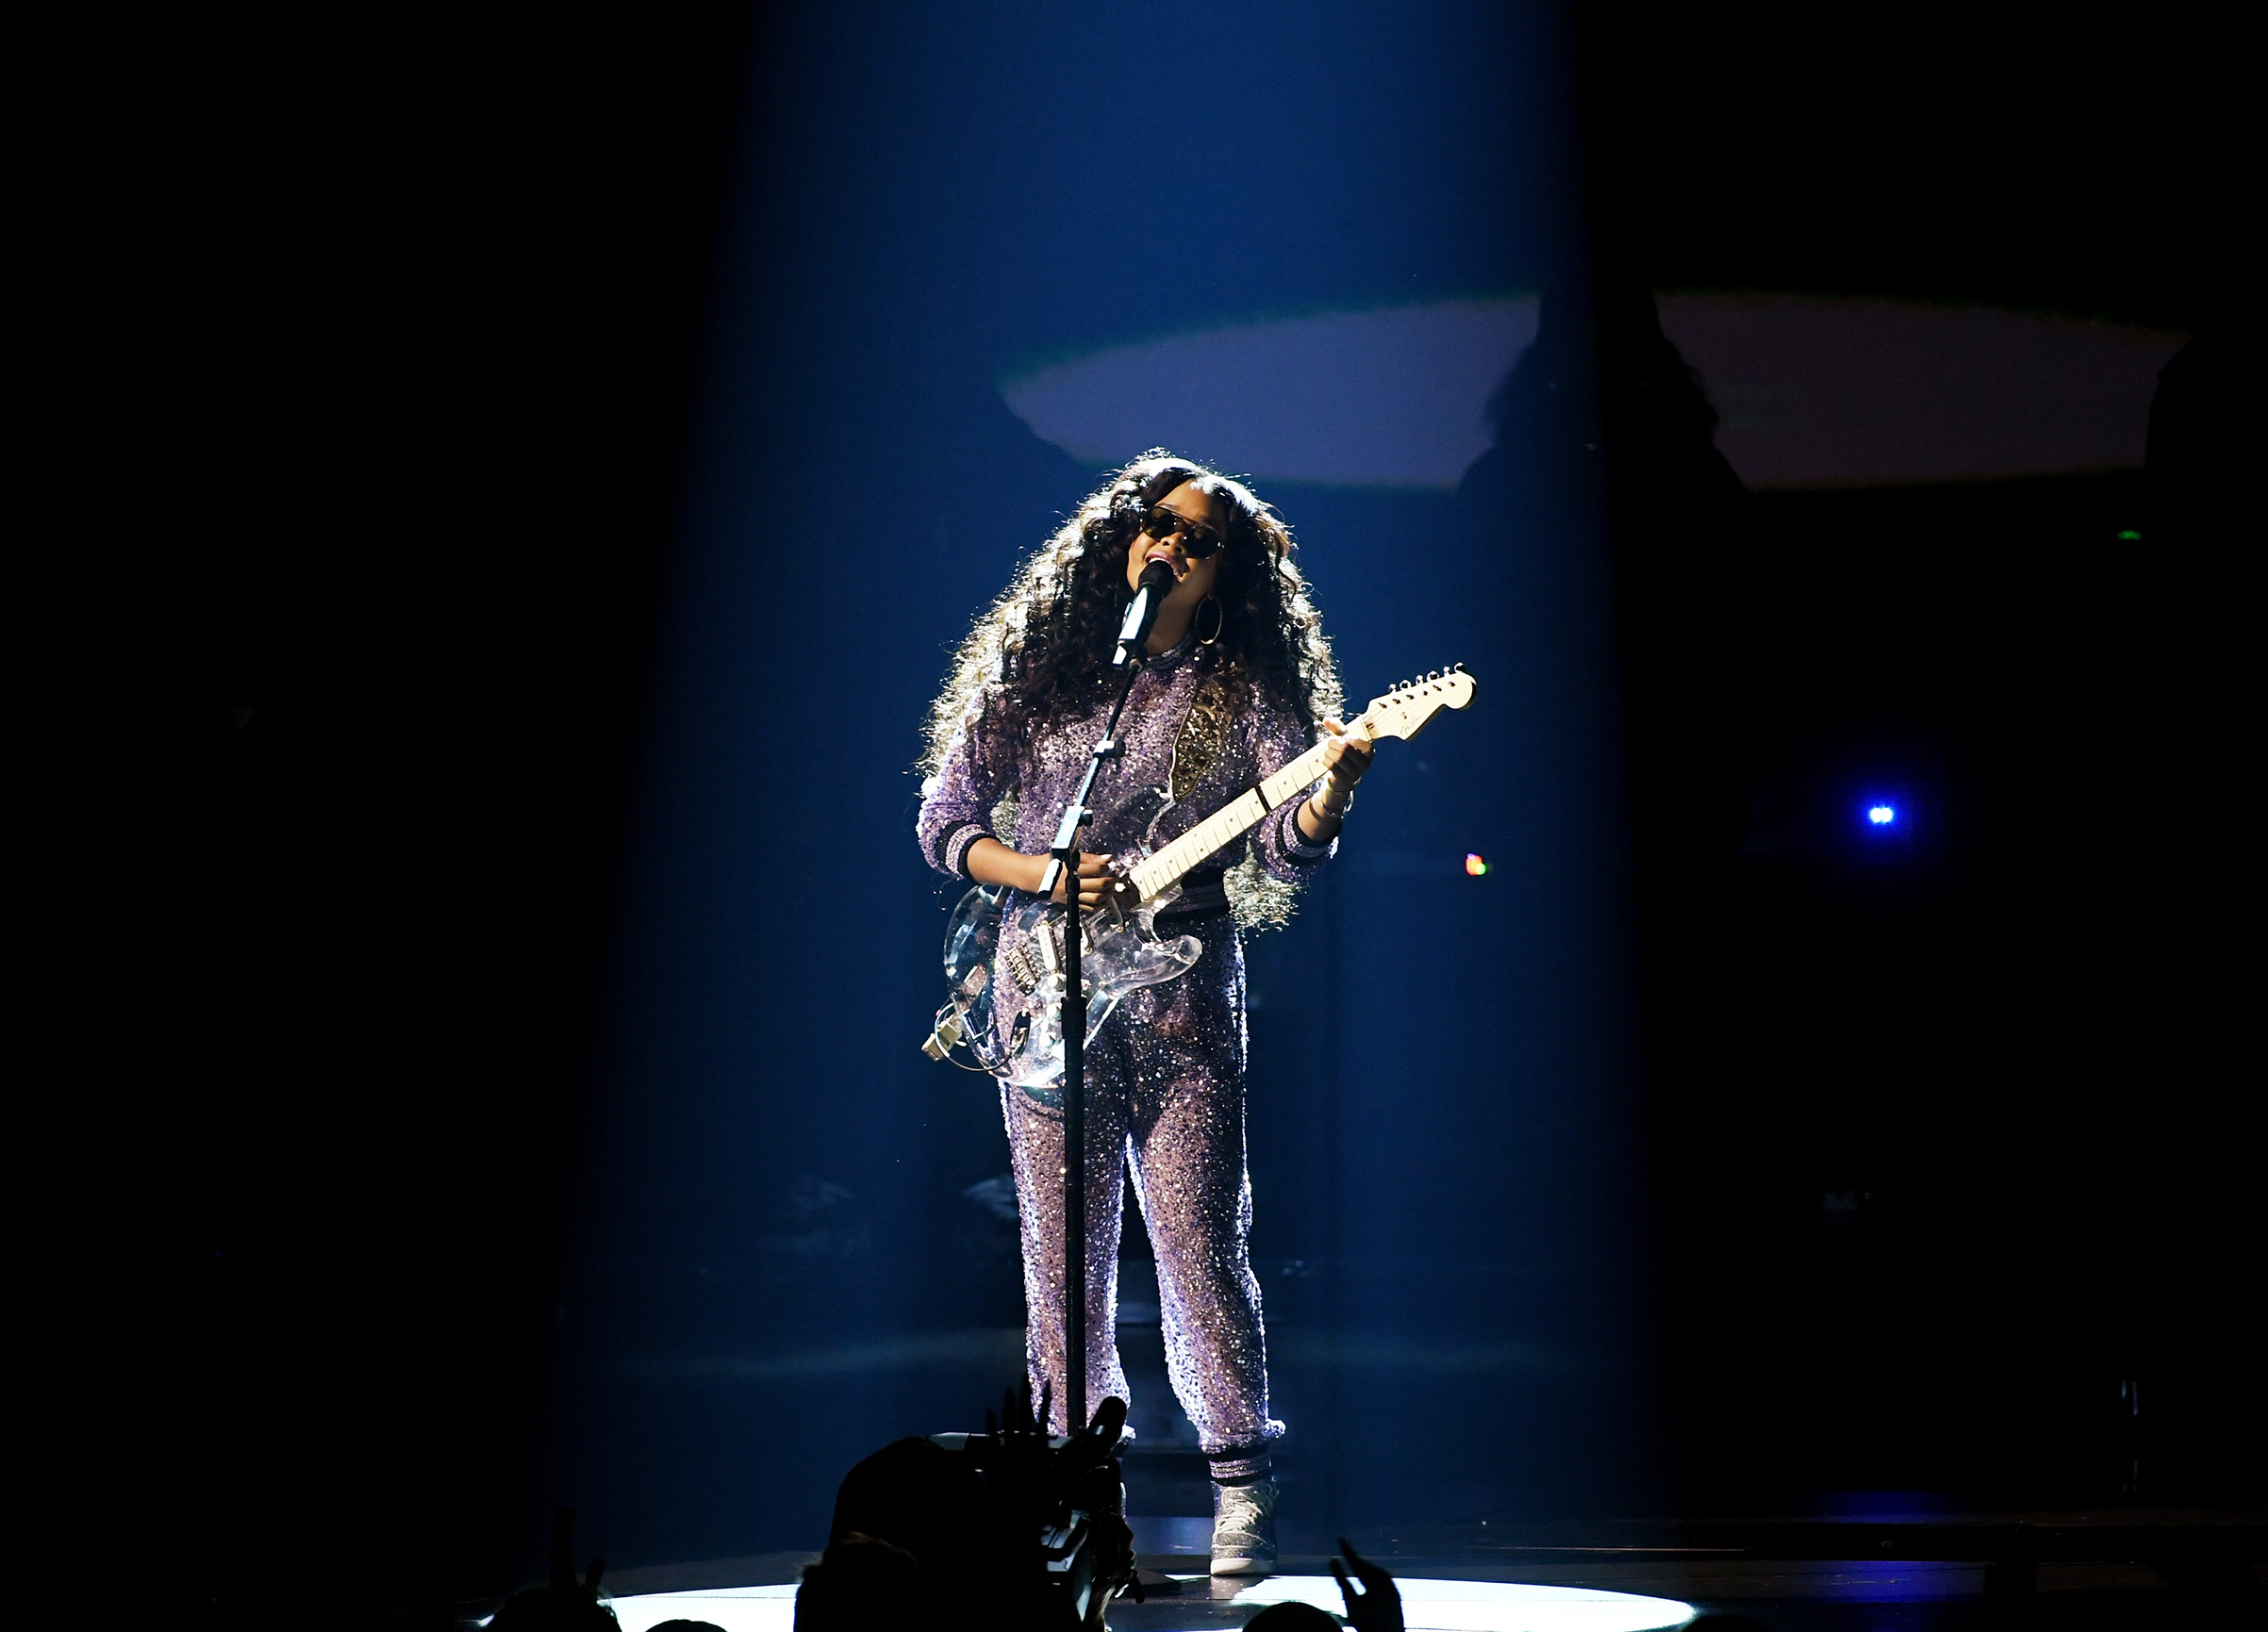 H.E.R. performs onstage during the 61st Annual GRAMMY Awards at Staples Center on Feb. 10, 2019 in Los Angeles.